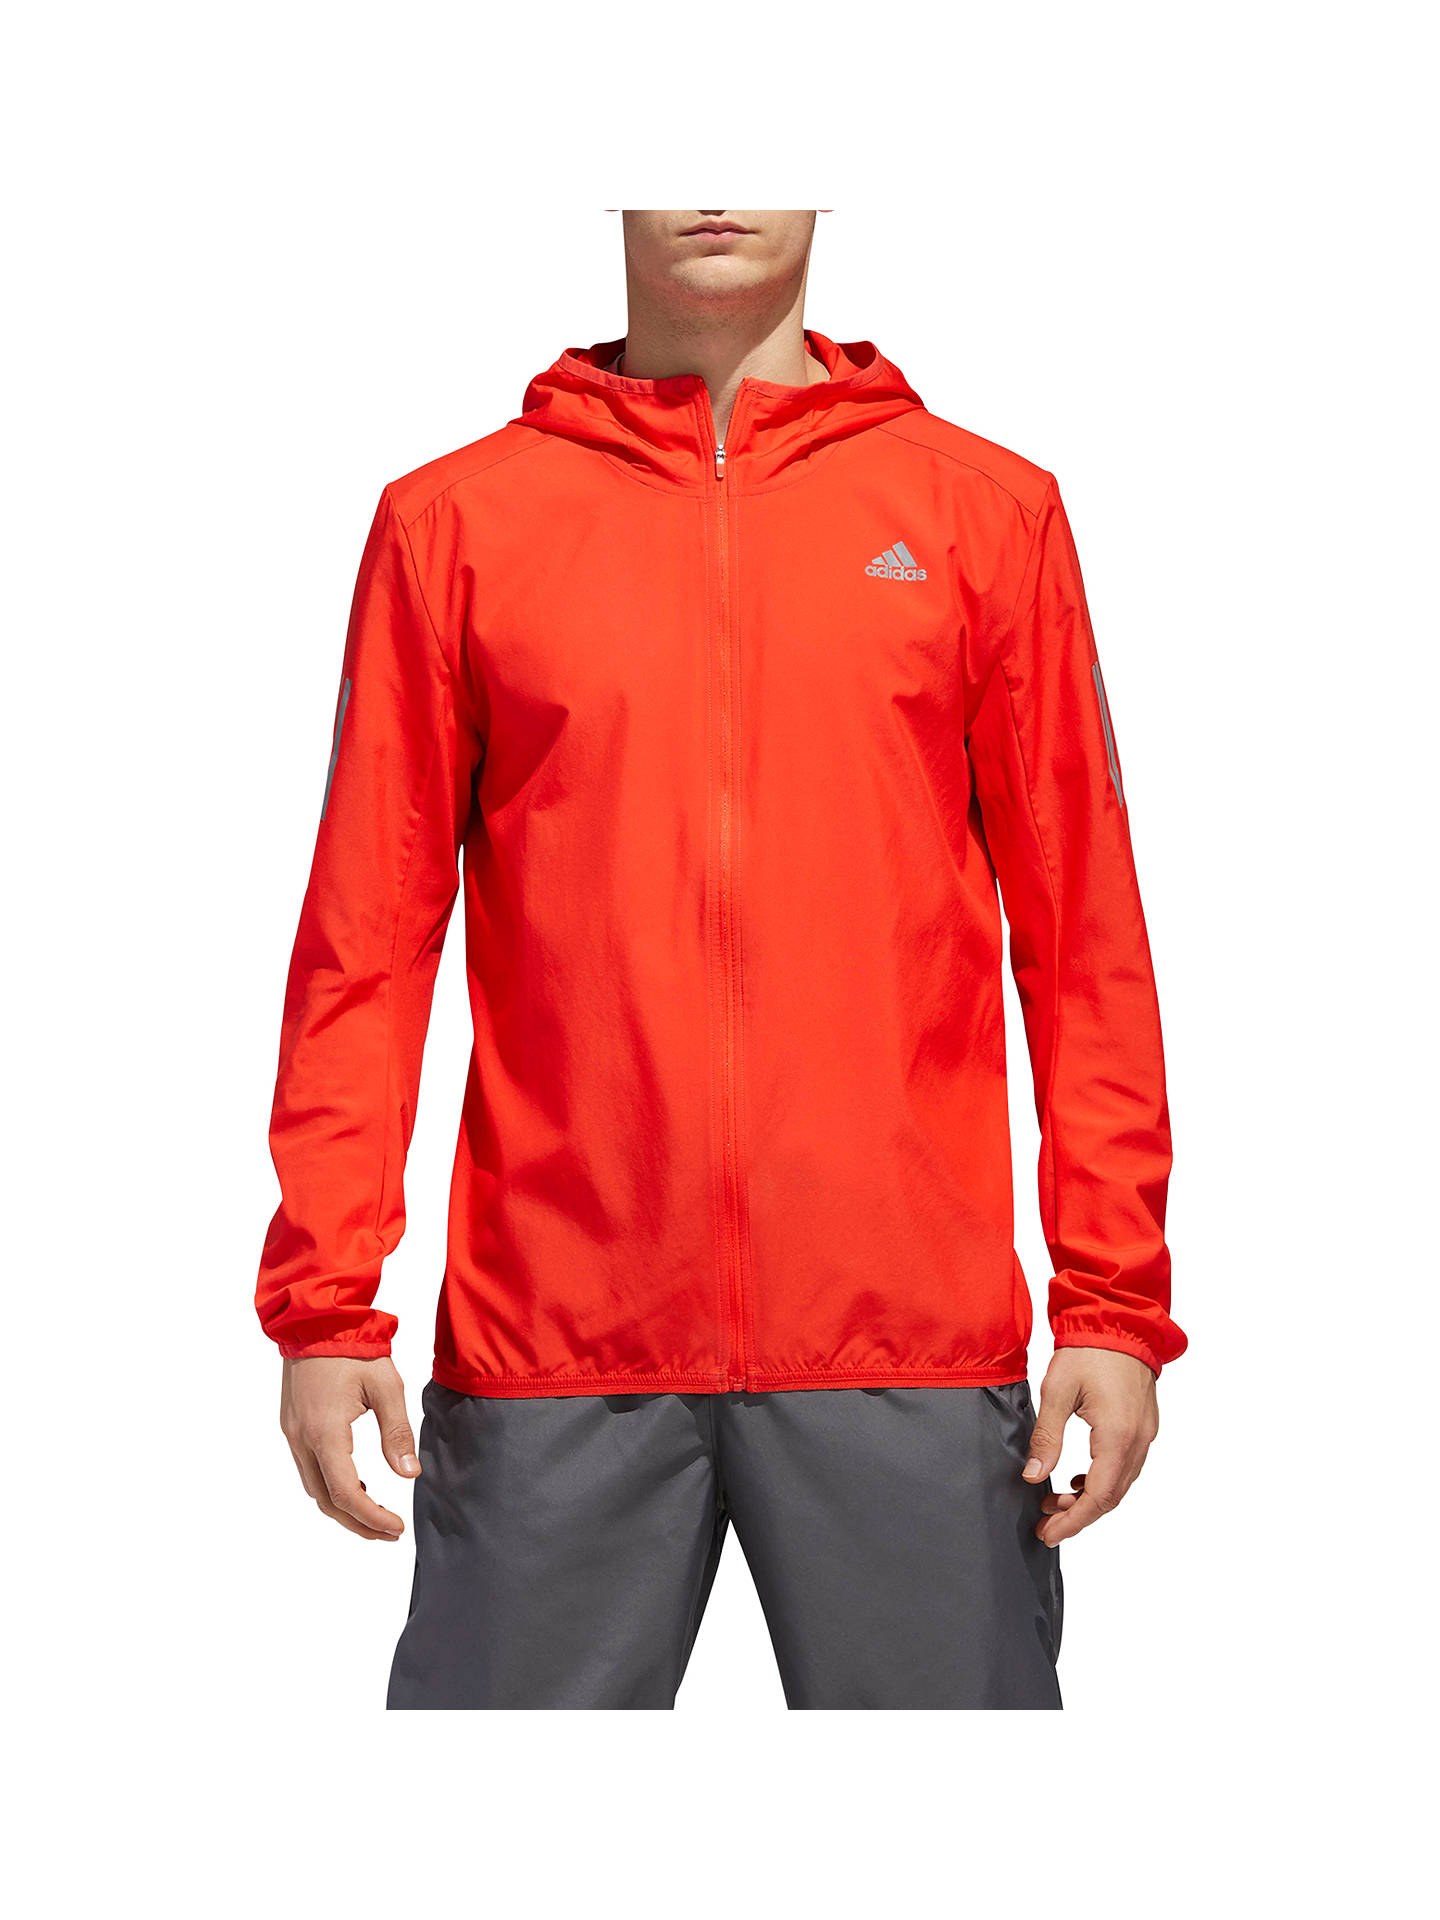 e1f88ccc9 Buy adidas Response Men's Running Jacket, High Resolution Red, High  Resolution Red, S ...